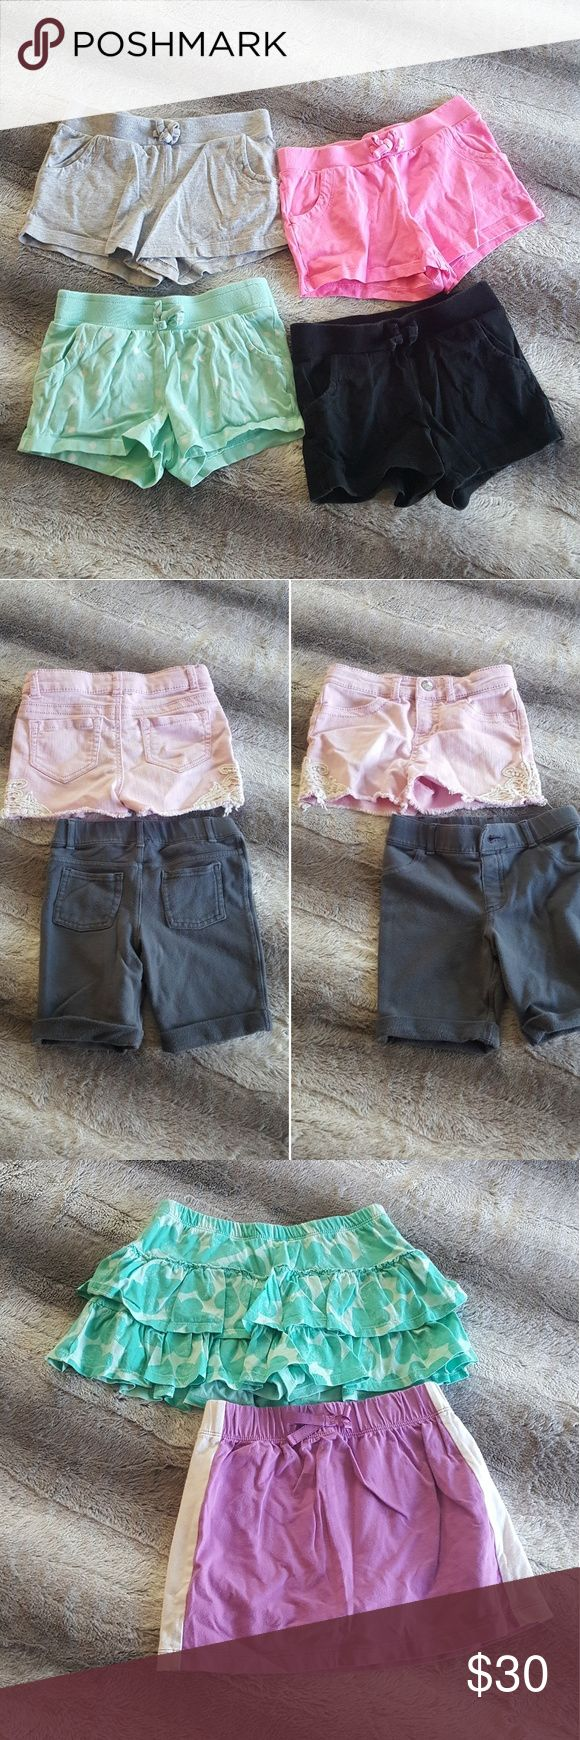 Bundle of Girls Shorts and Skorts All items are used but good condition with a lot of wear life left! There are 13 items total in this bundle. Sizing is as follows: Photo of 4 shorts are a size 6x Photo of black & purple shorts are a size 6x Photo of 2 skorts are a size 6 & 6x Photo of 2 shorts, pink are a size S & grey are a size 6x Photo of black shorts are a size 6x   ** I consider ALL reasonable offers based on my selling price. If you don't ask I can't say YES ** Bottoms